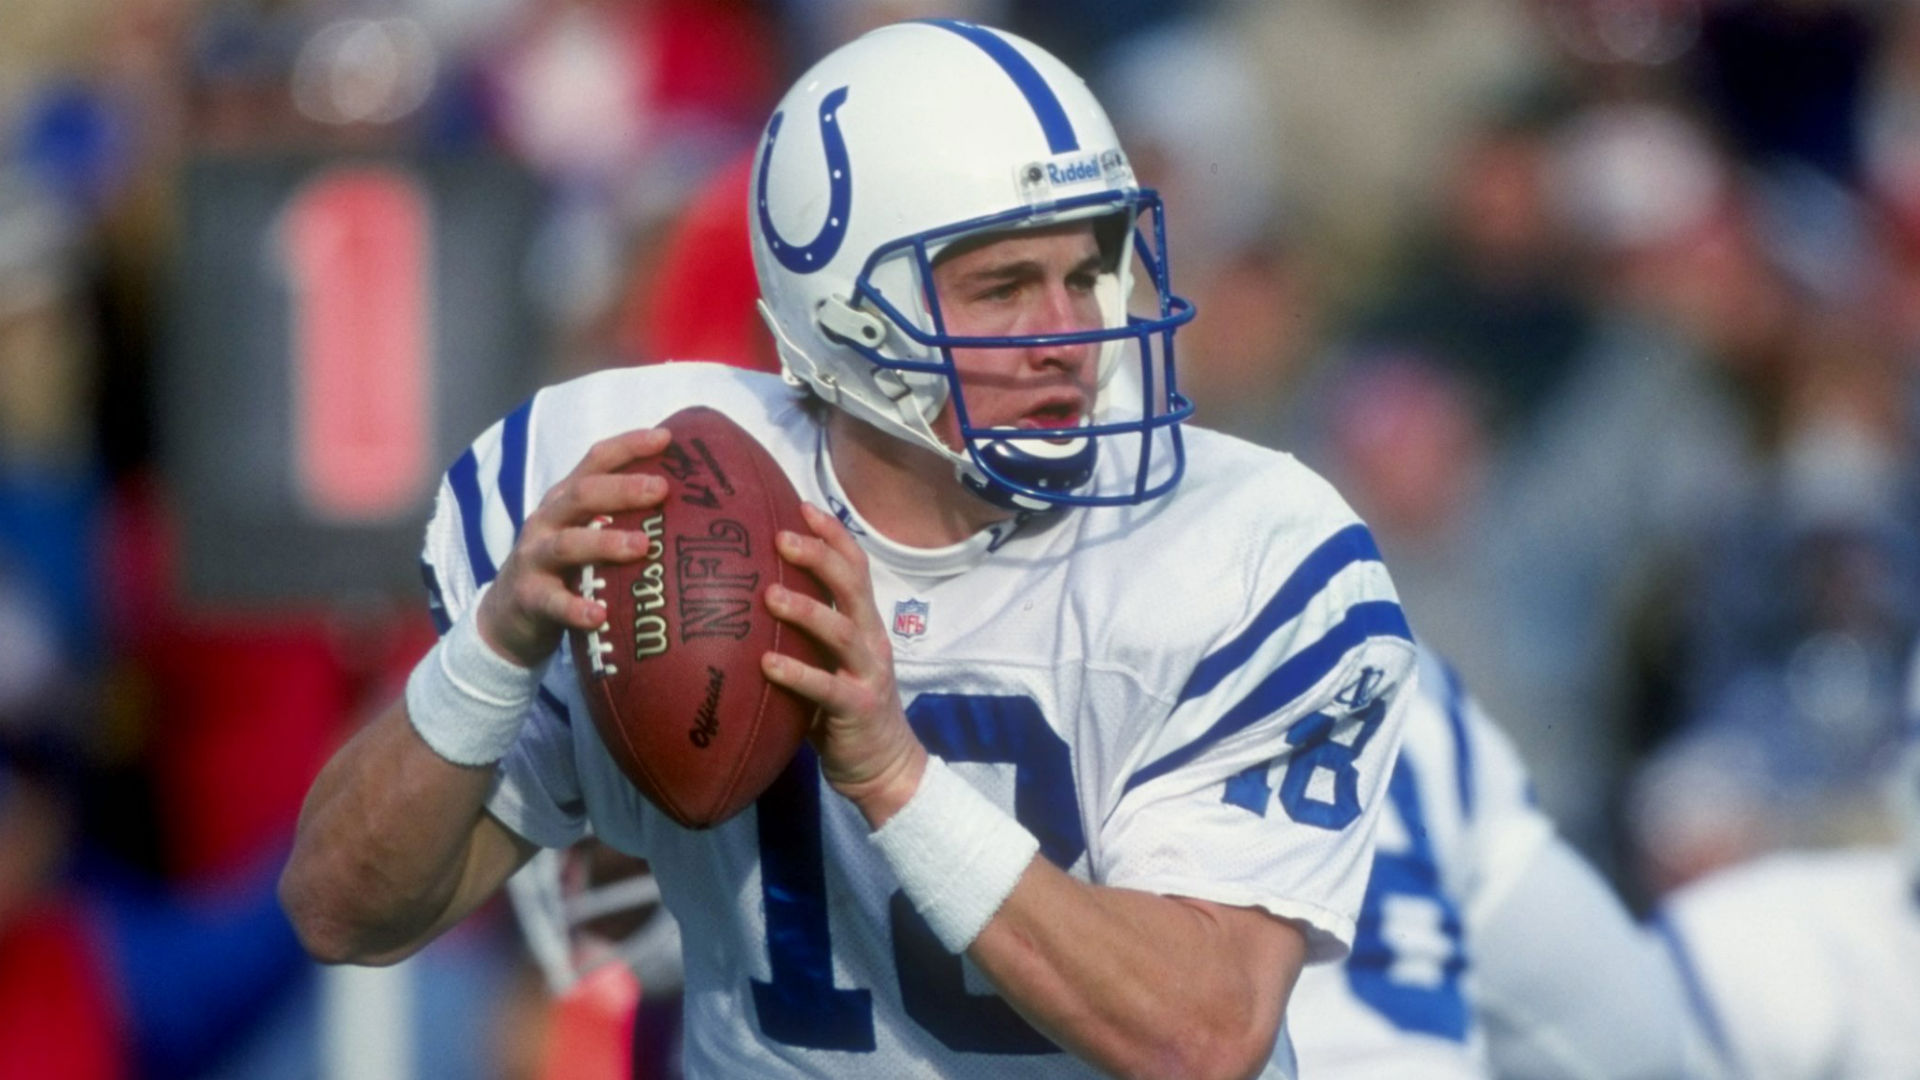 Peyton Manning Colts Inside Peytonmanninggetty0930ftr Colts Join Peyton Manning Supporters Call Al Jazeera Report